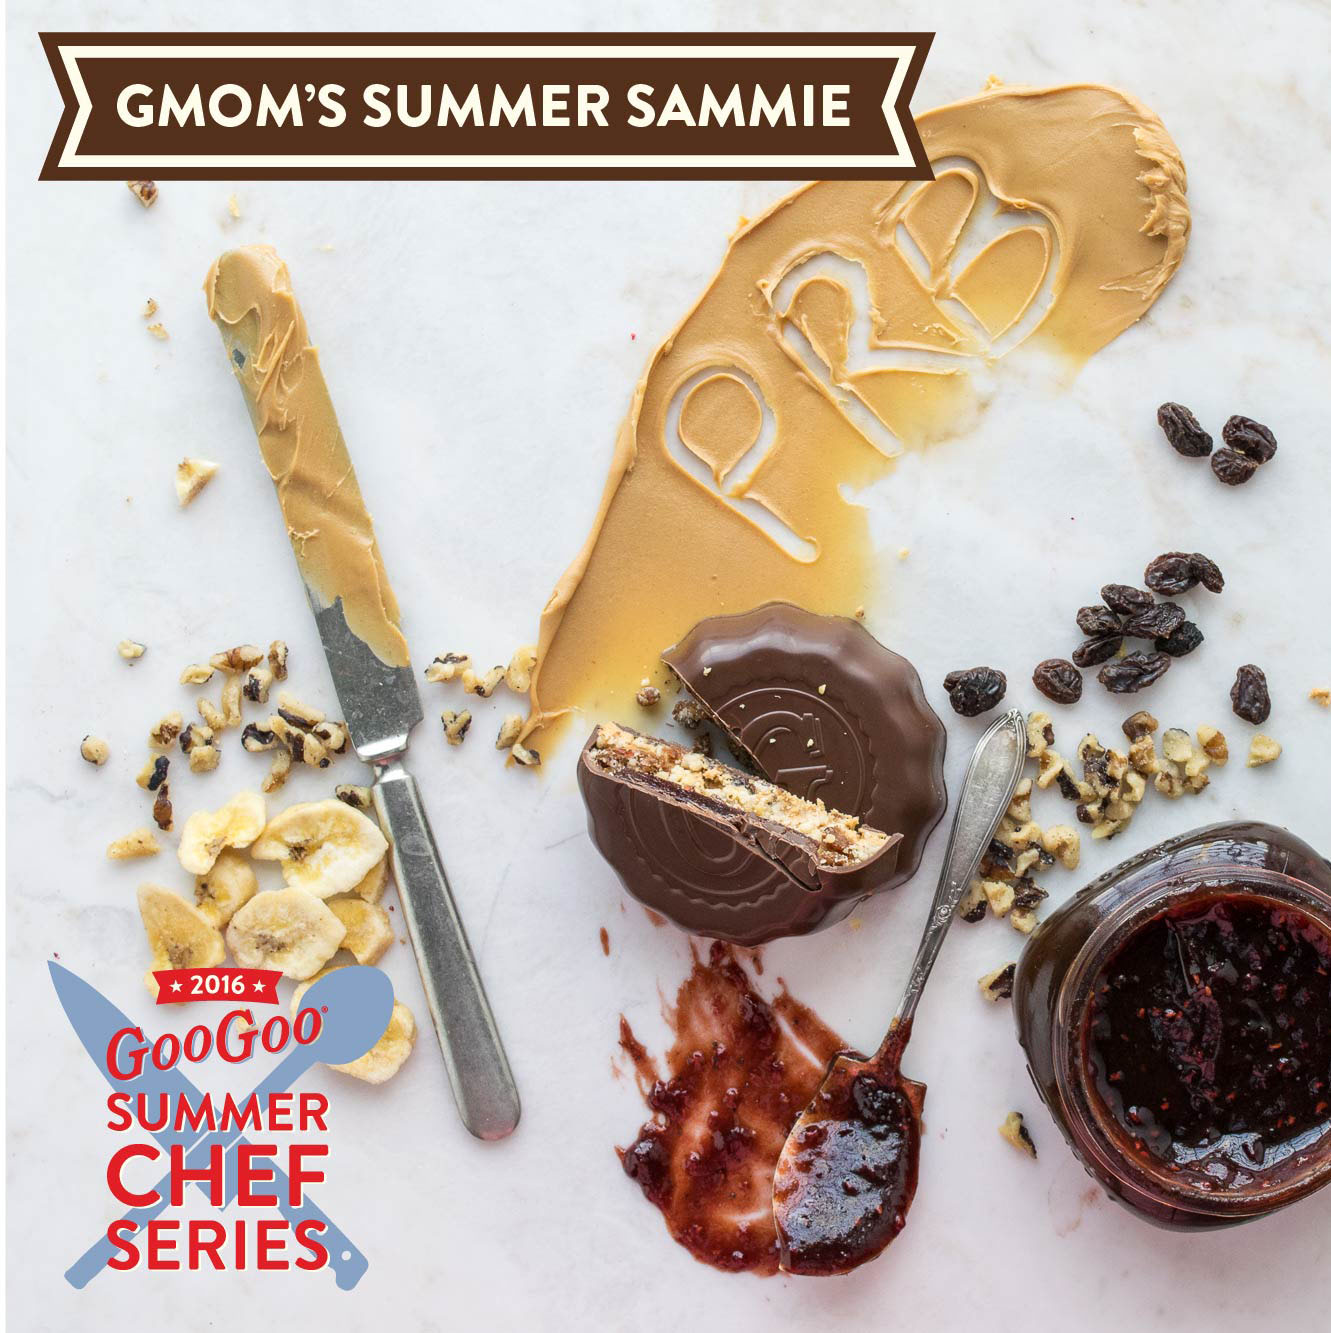 Summer Chef Series: Gmom's Summer Sammie Image